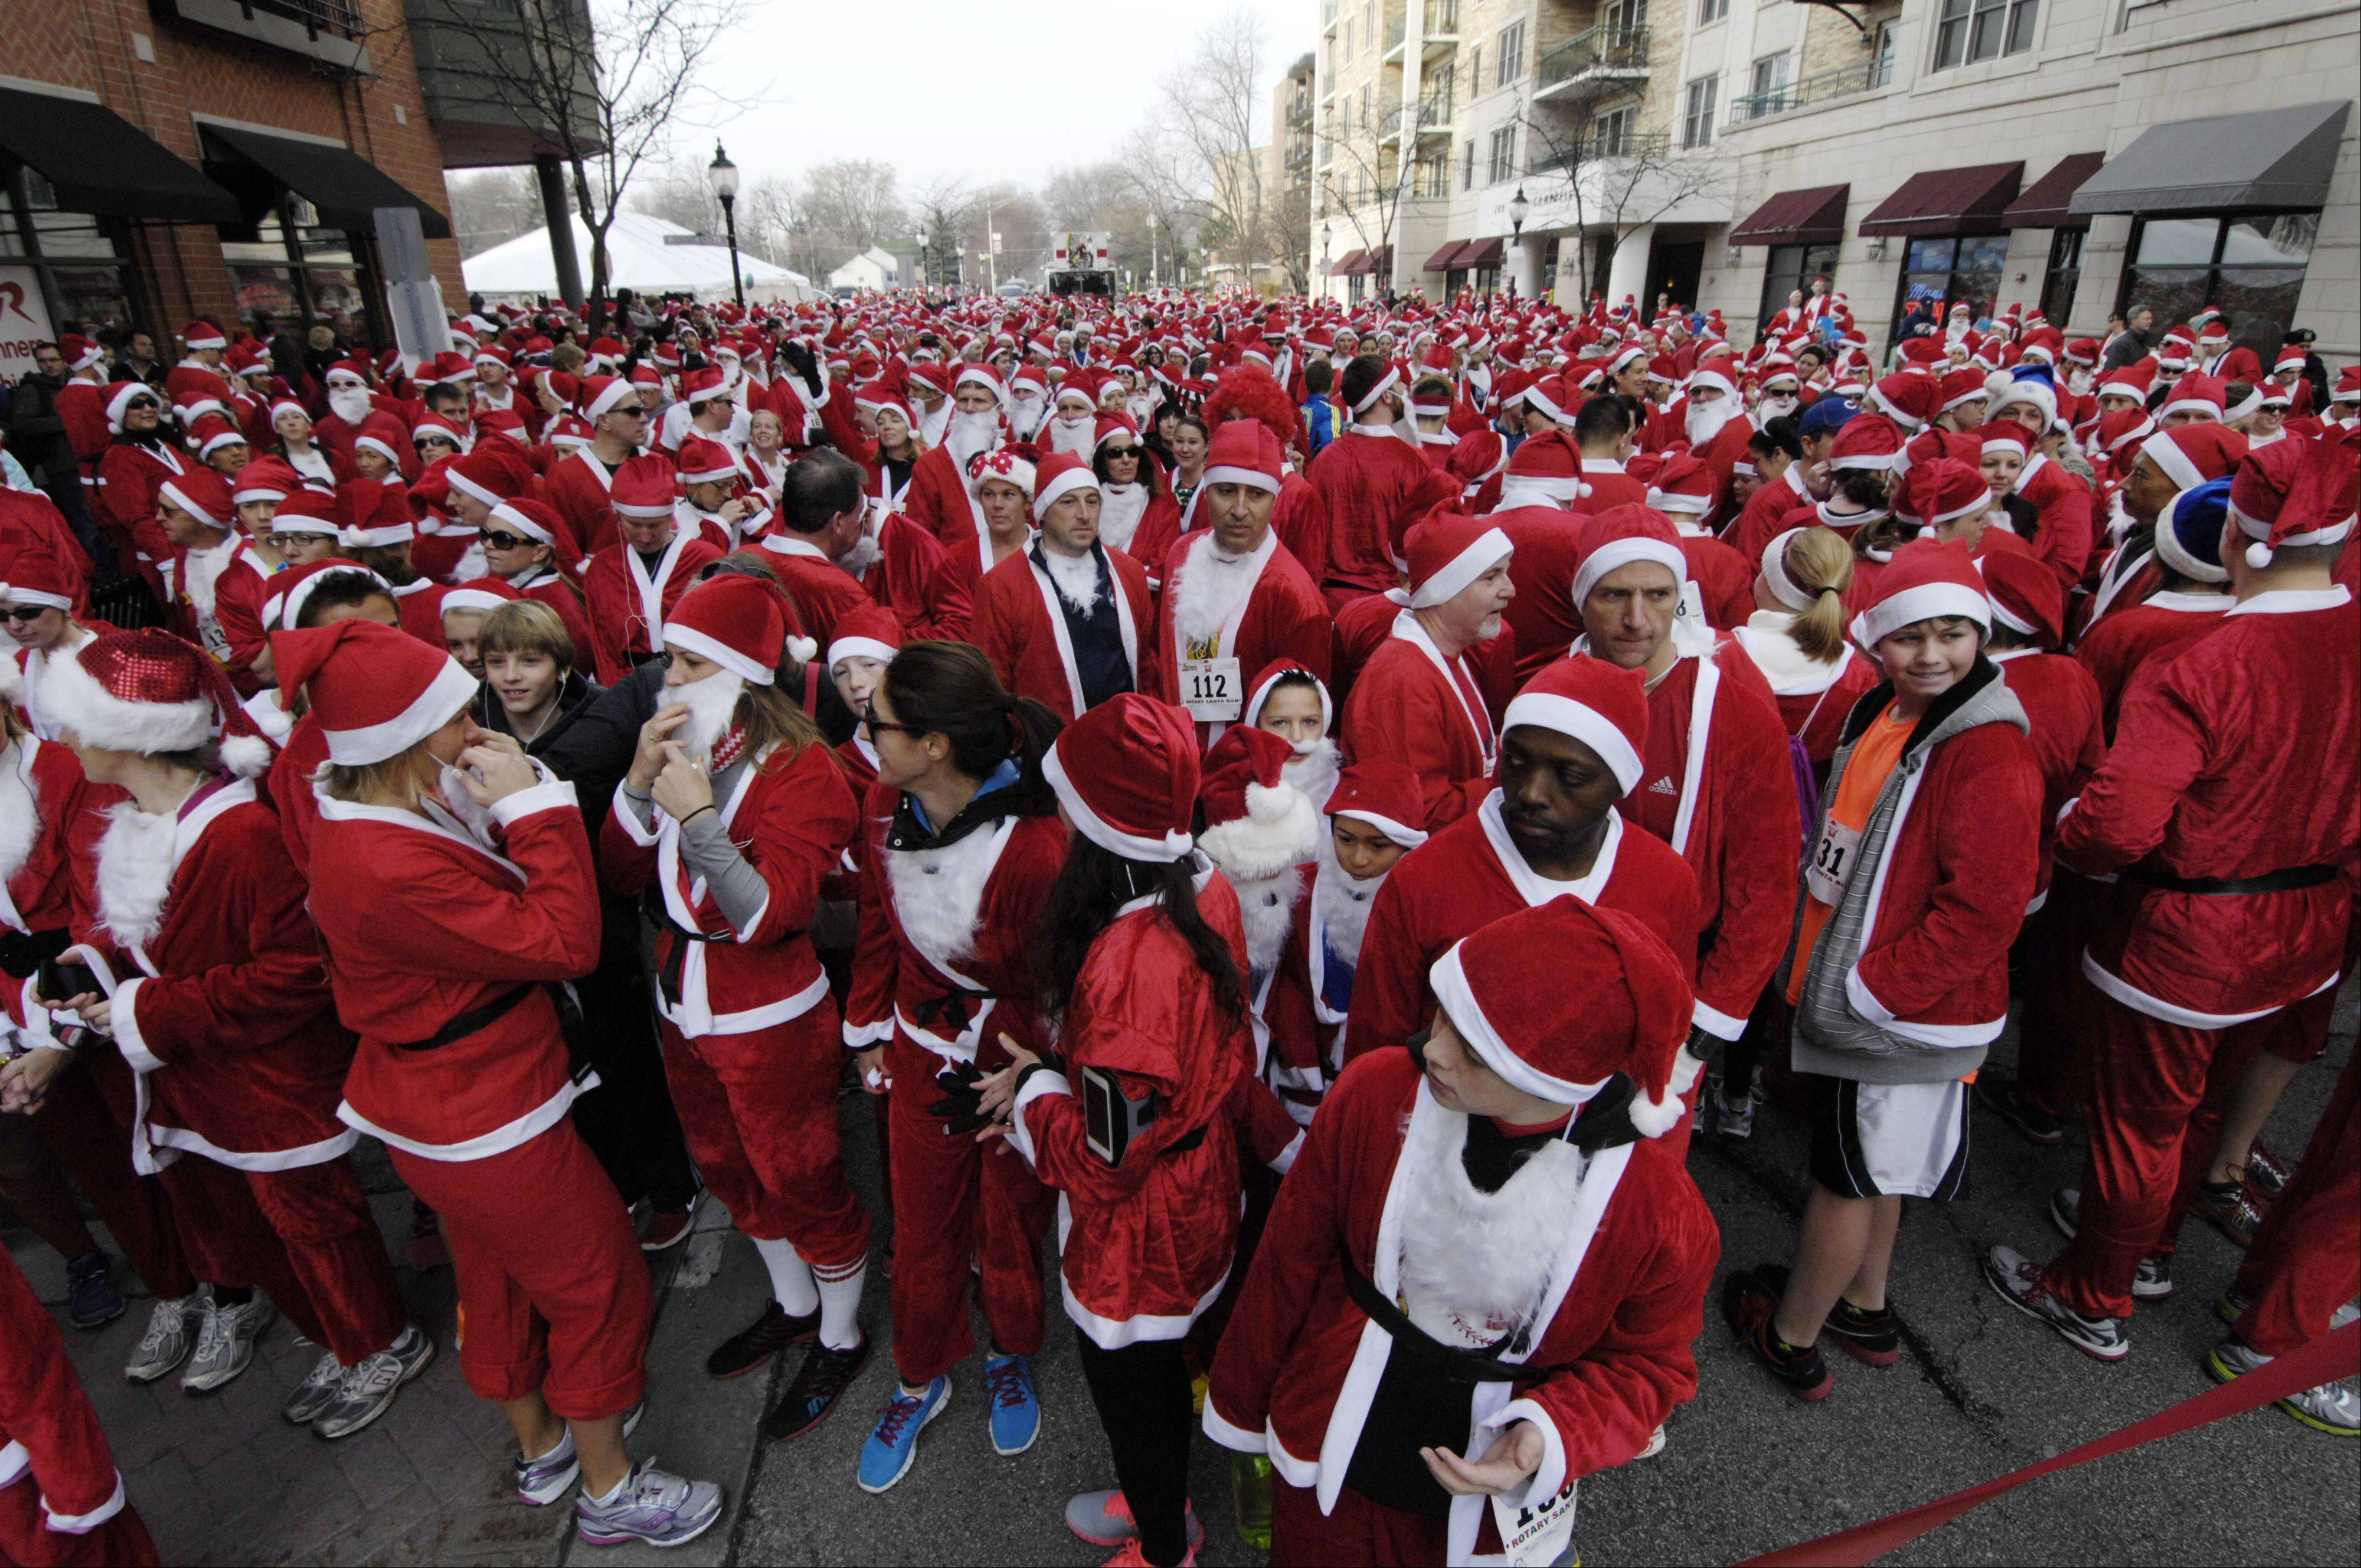 About 2,000 Santas participated in Saturday's 5k Santa Run in Arlington Heights.